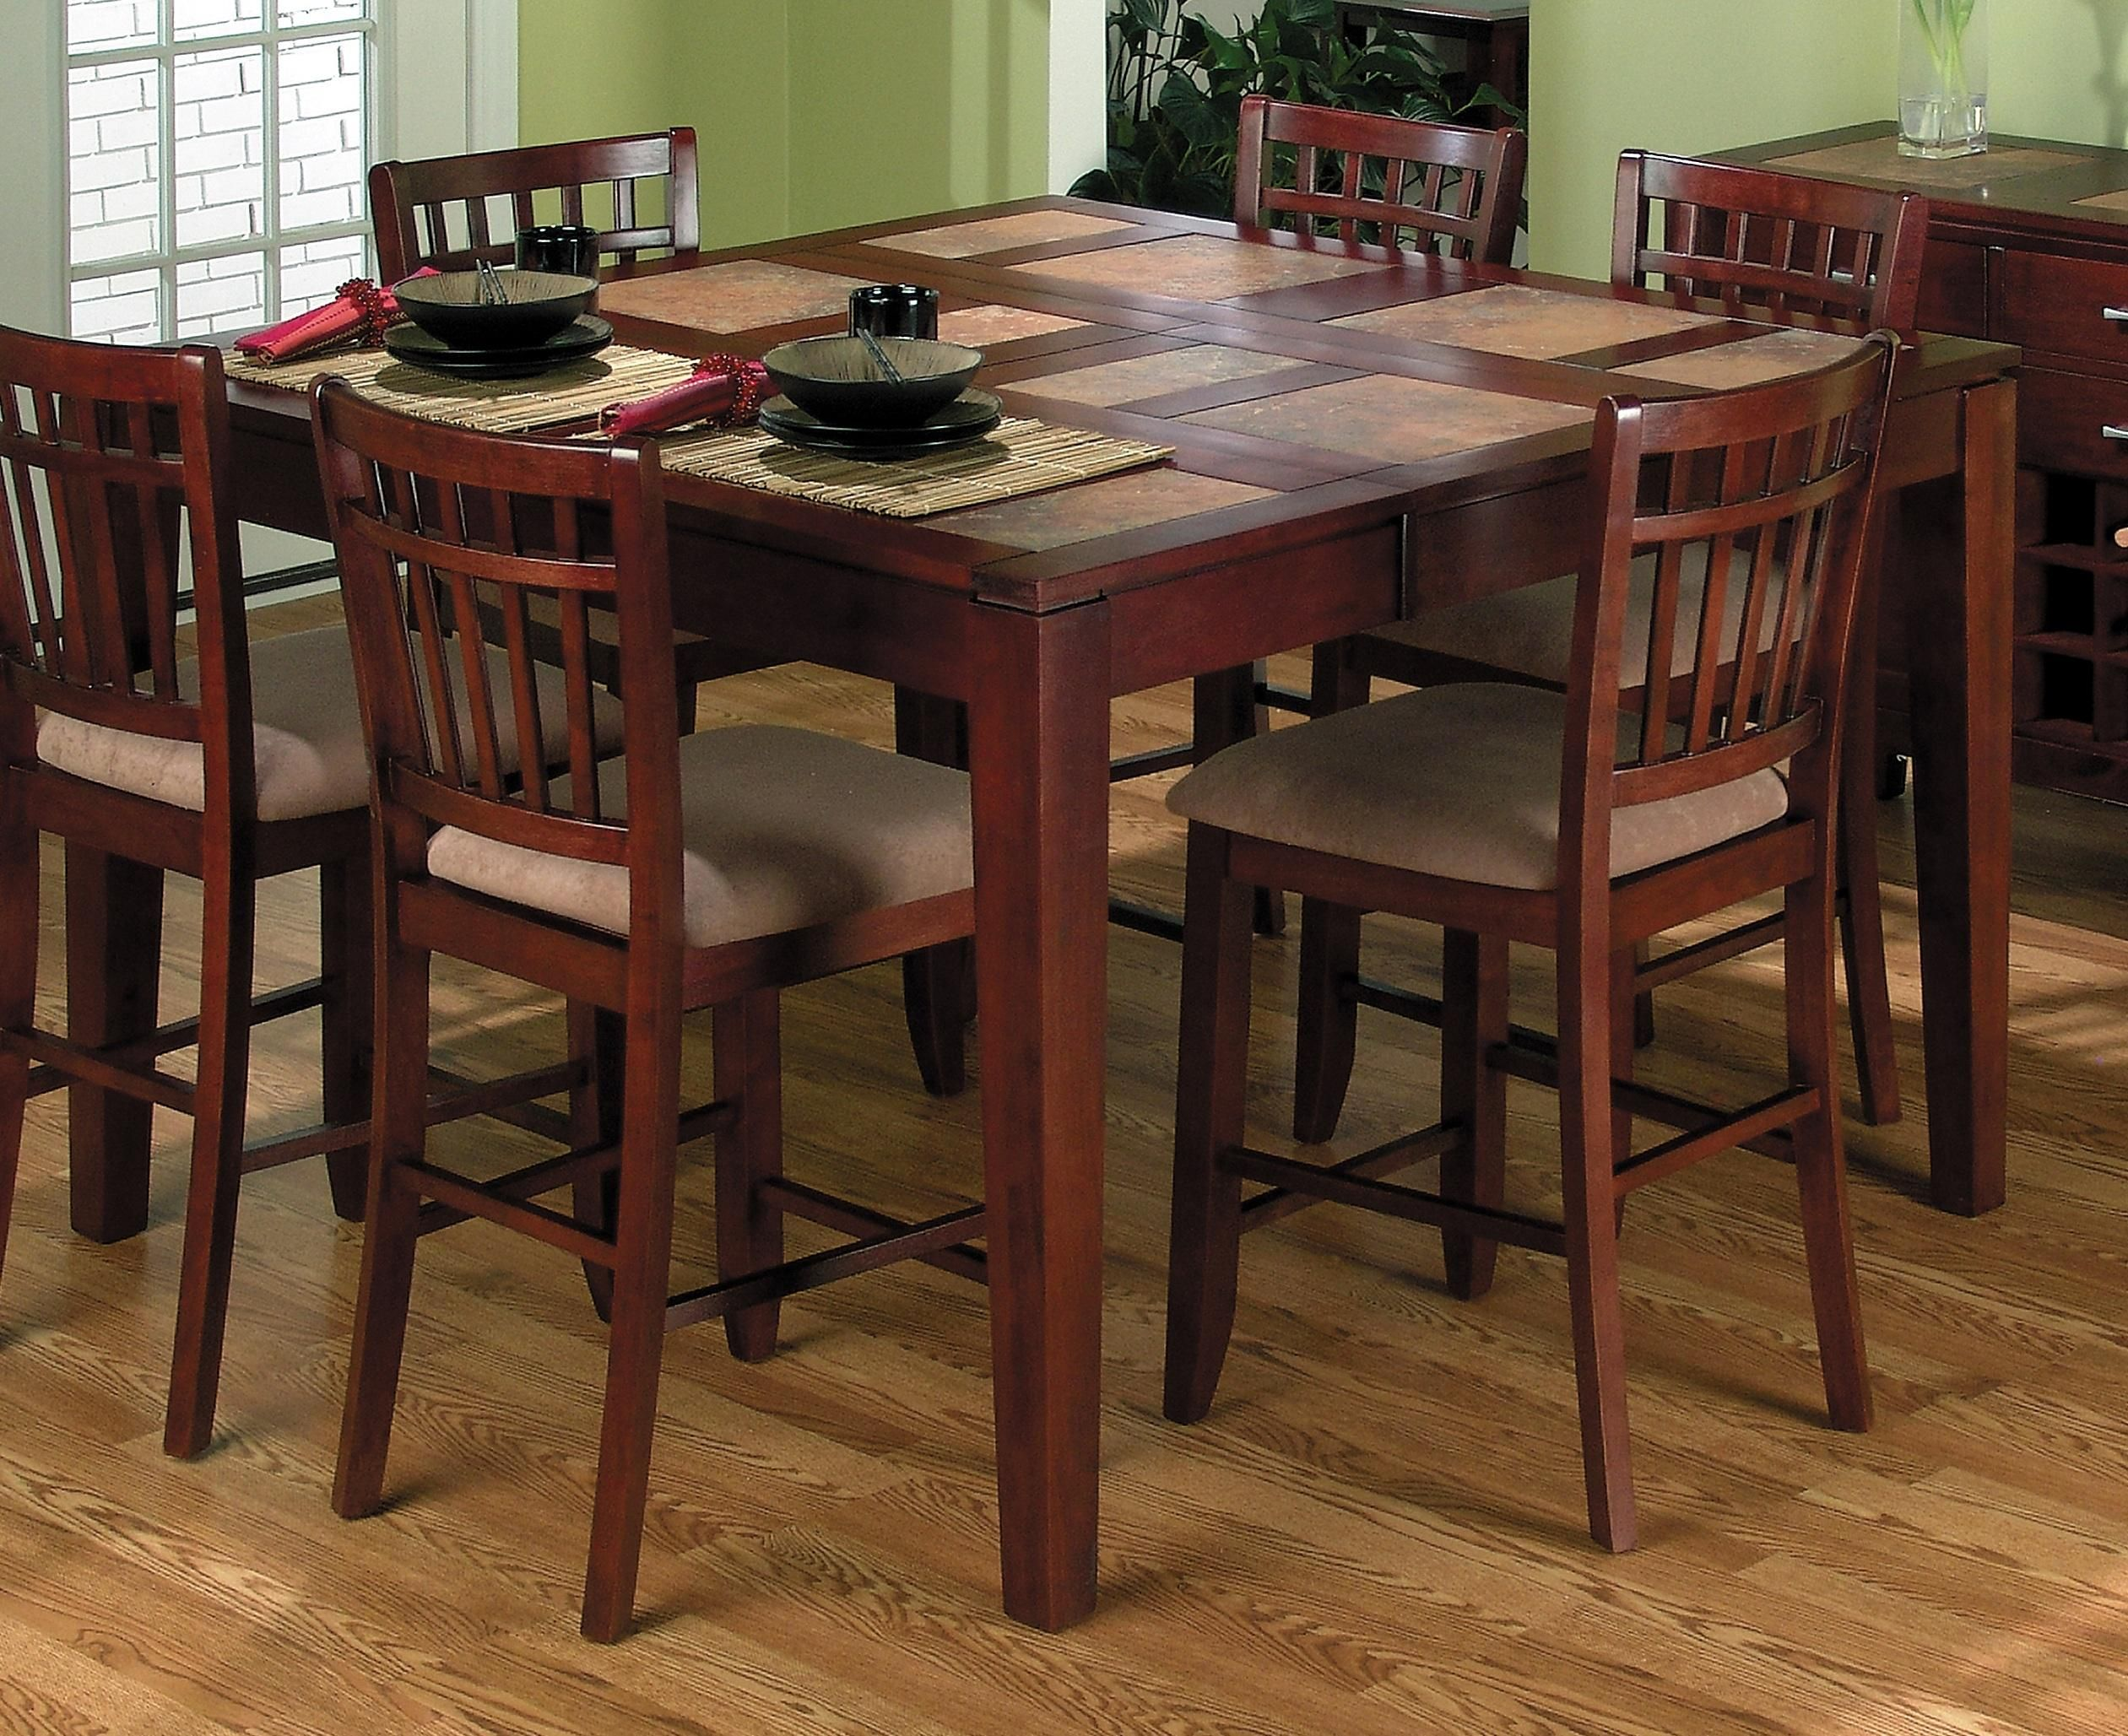 10 Small Dinette Set Design Wooden Square Table And 6 Chairs Of Dinette Set For Dining Room In Hardwo Kitchen Table Settings Top Kitchen Table Square Kitchen